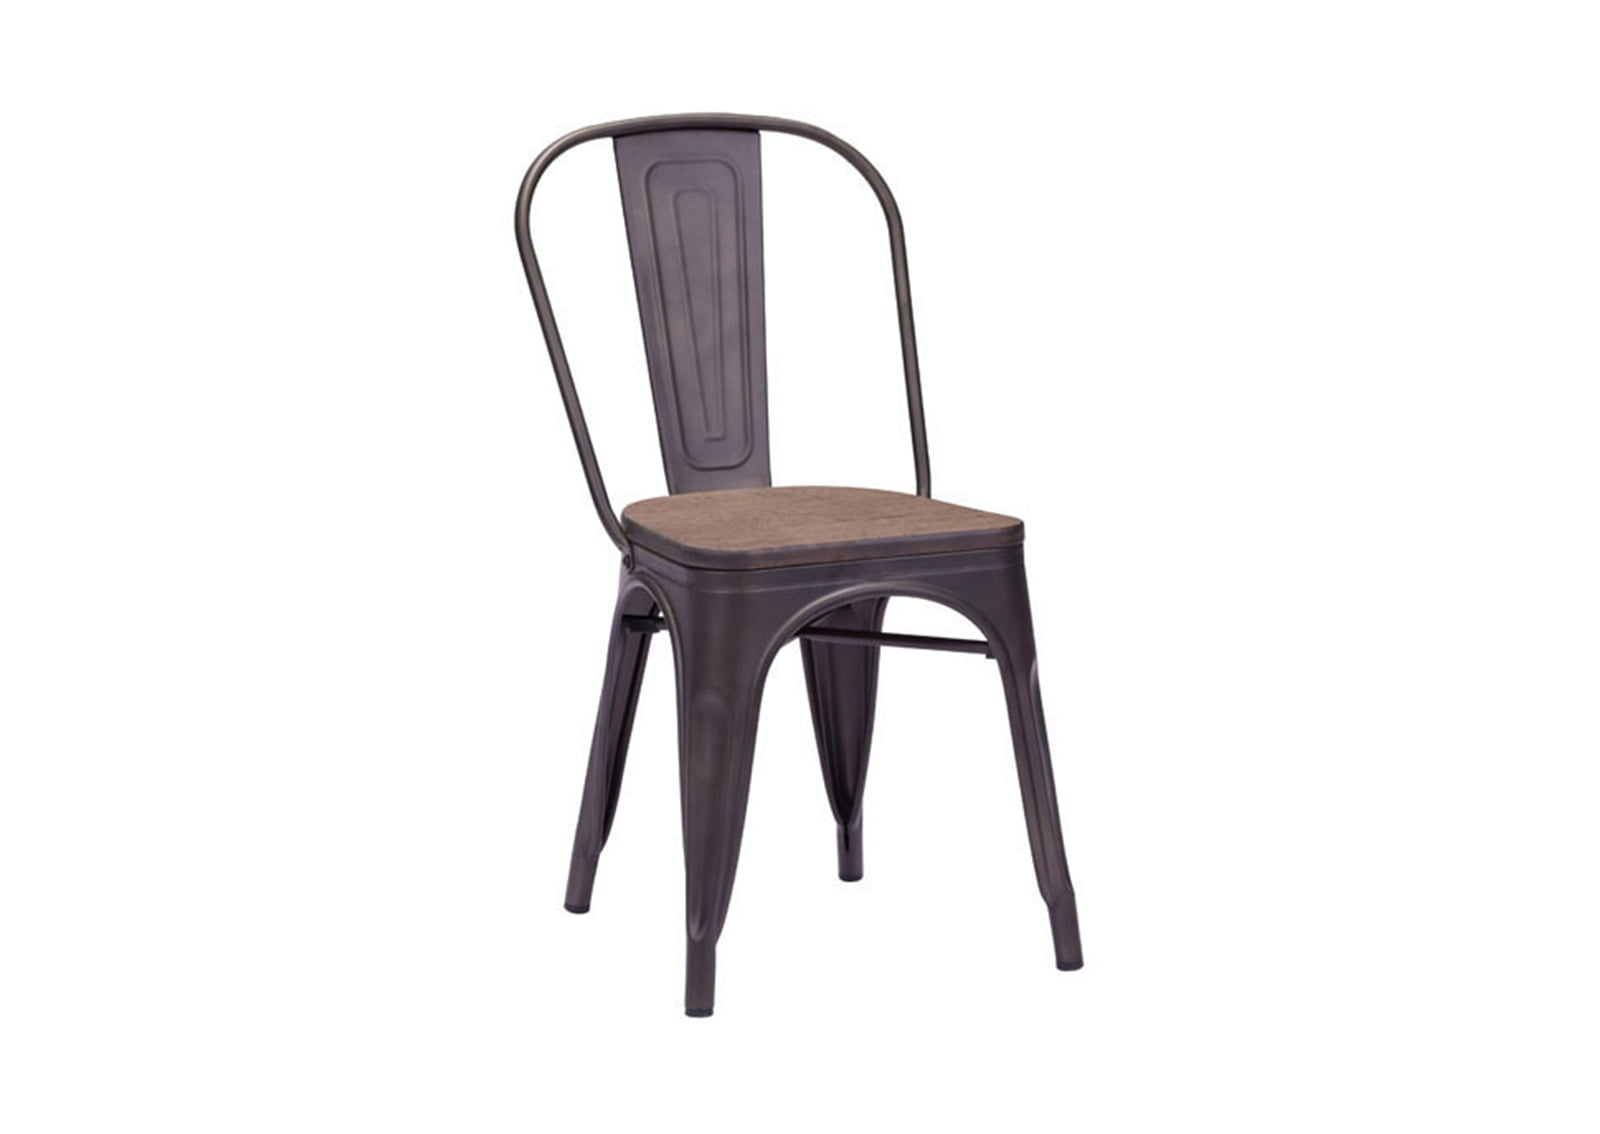 Elio-Dining-Chair-Rustic-Wood1